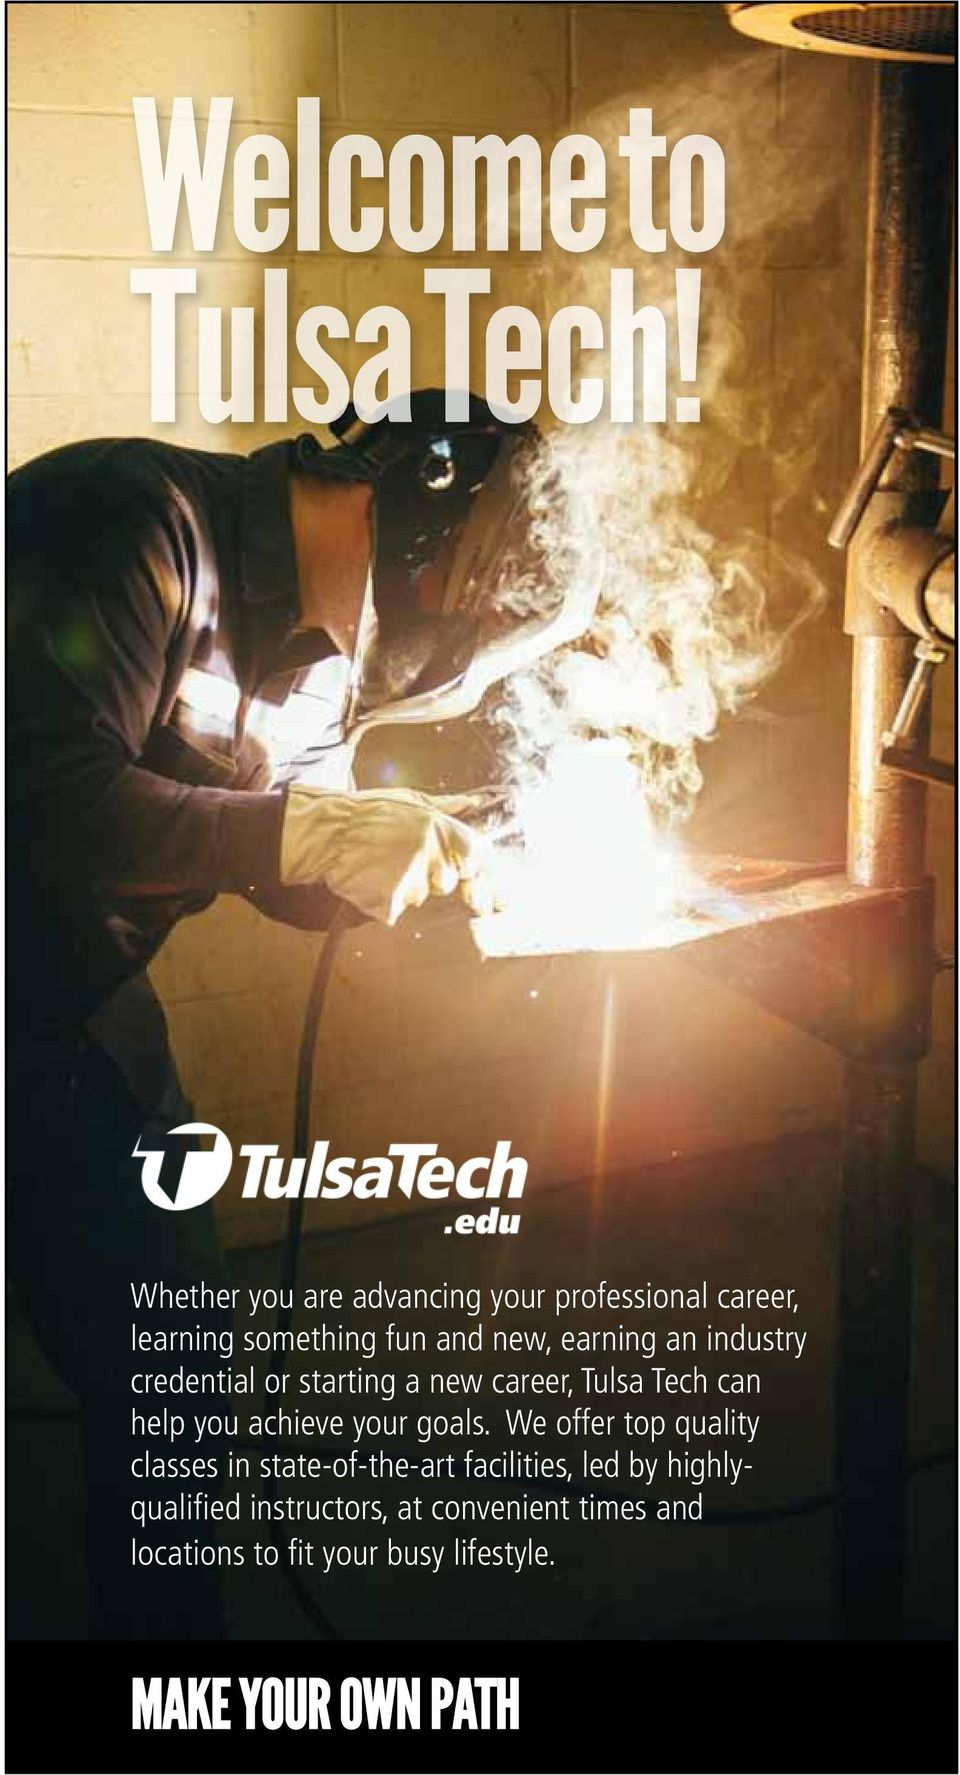 industry credential or starting a new career, Tulsa Tech can help you achieve your goals.